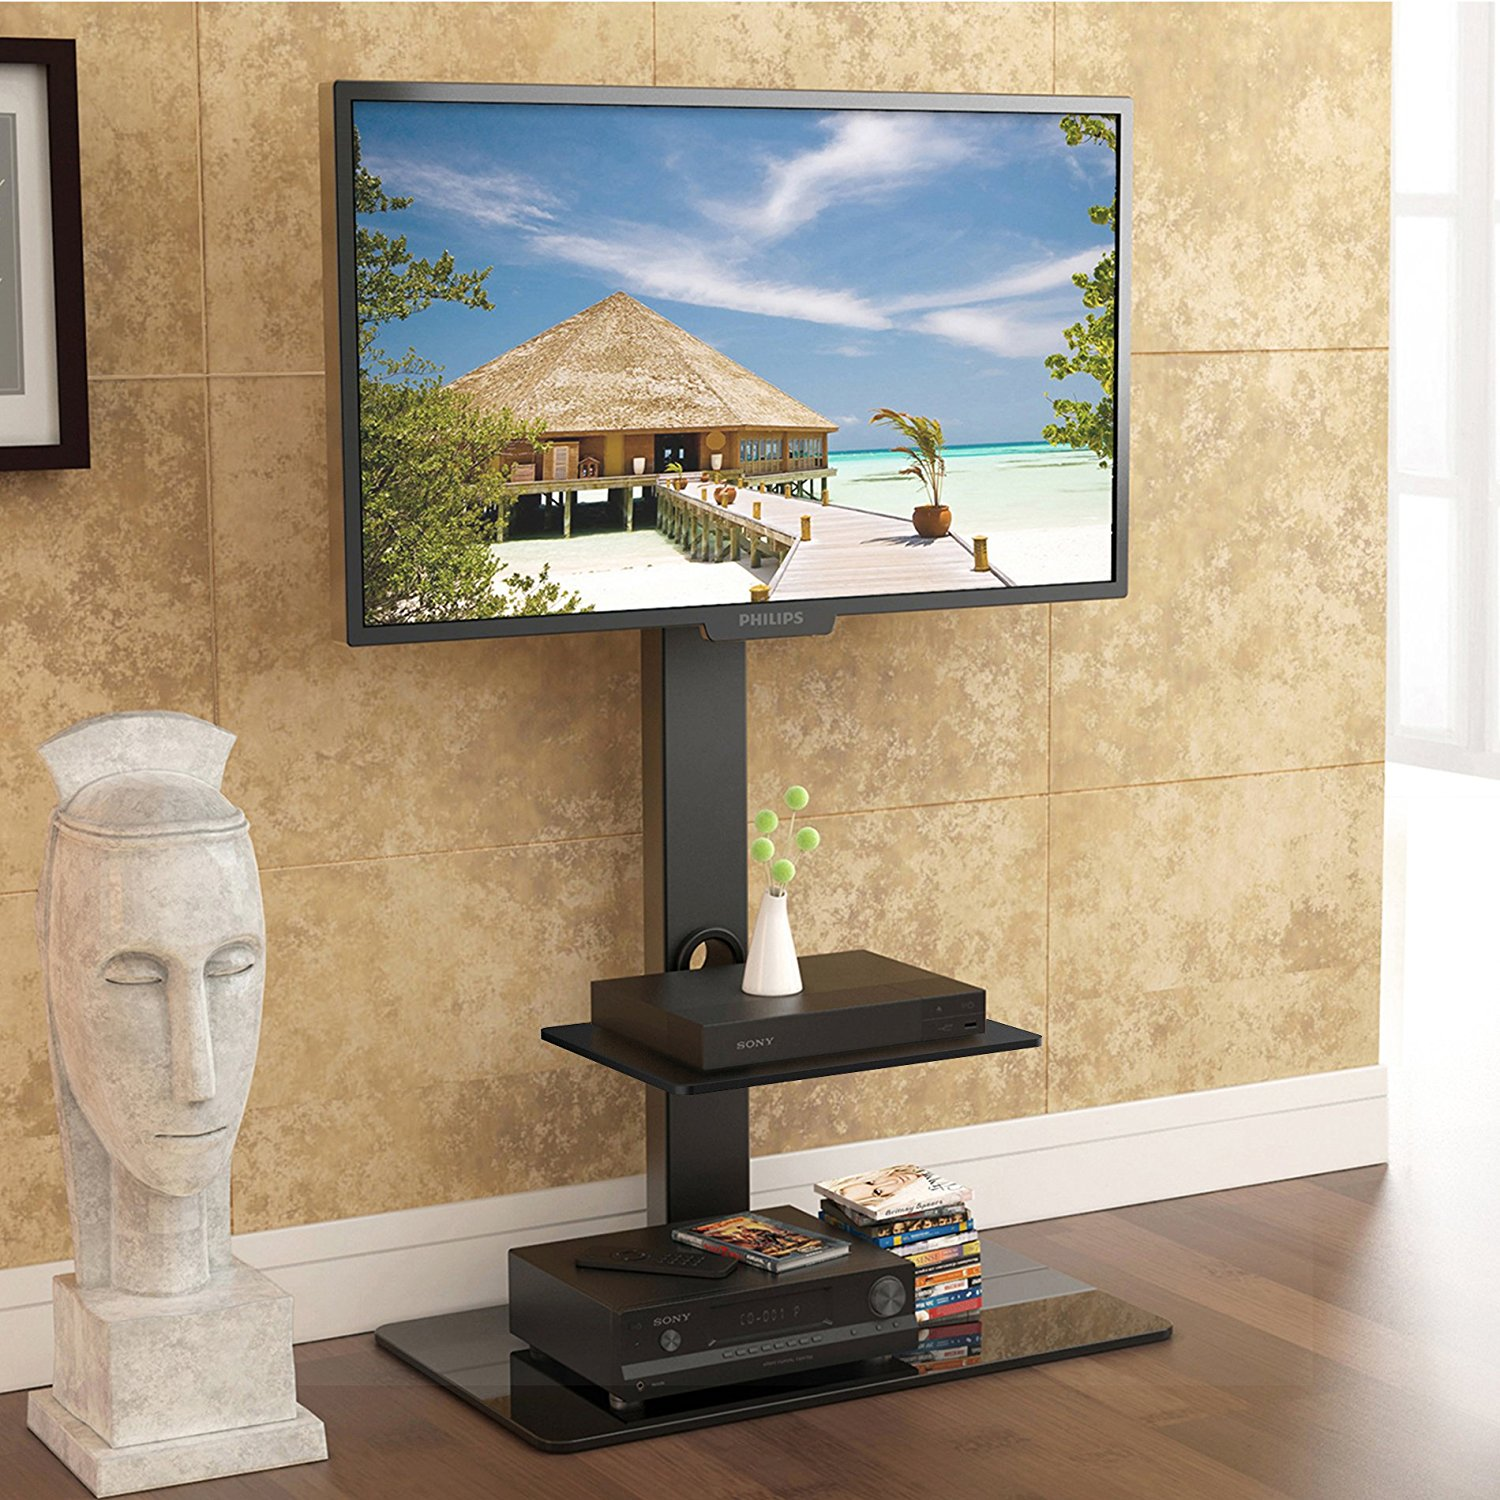 Fitueyes Floor Tv Stand With Swivel Mount For 32 To 65 Inch Tv